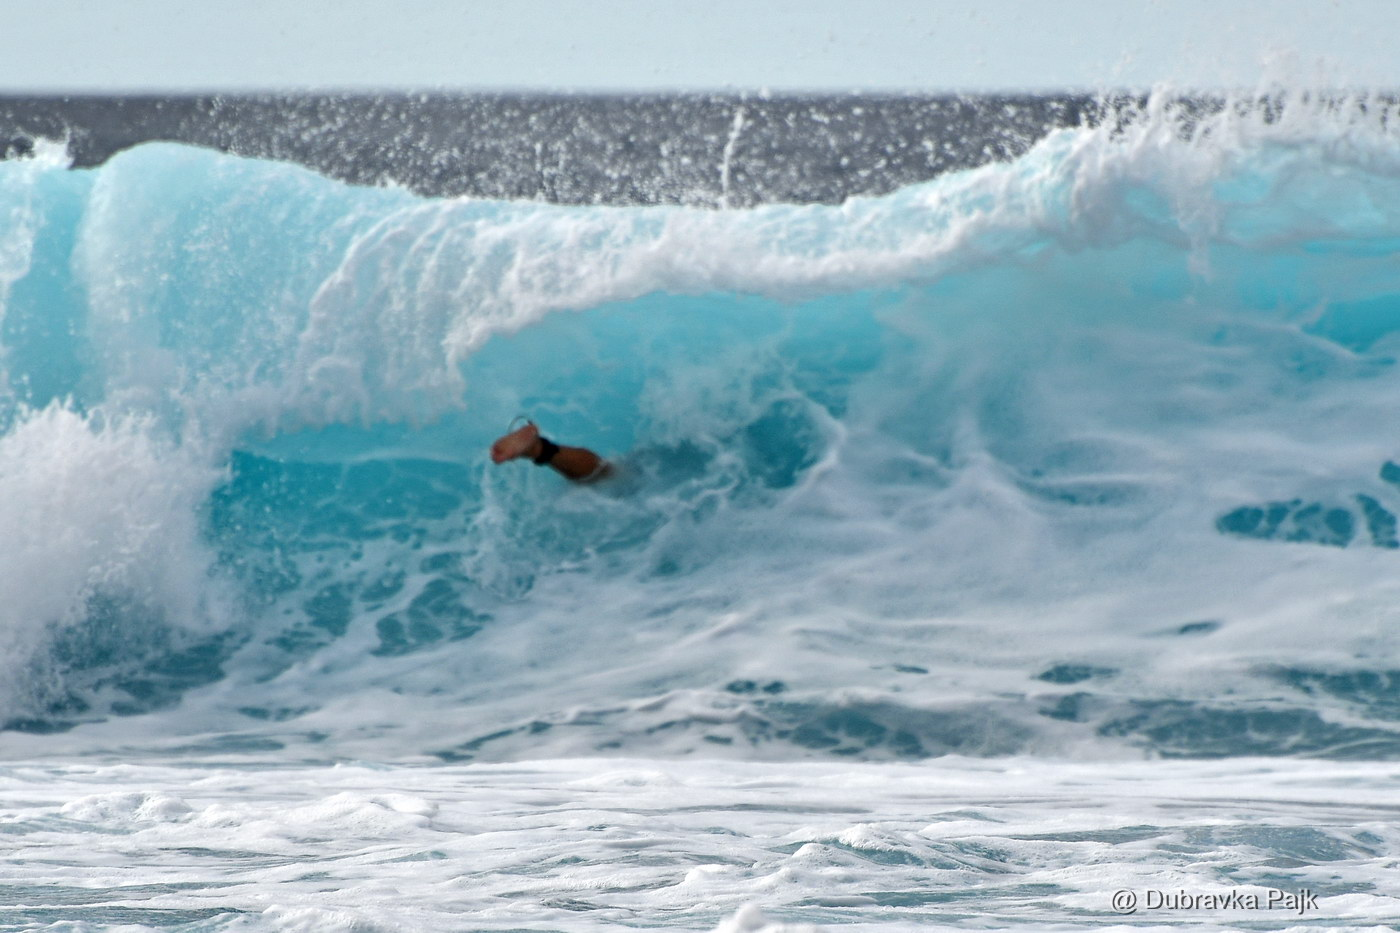 SURFING IN THE CANARY ISLANDS